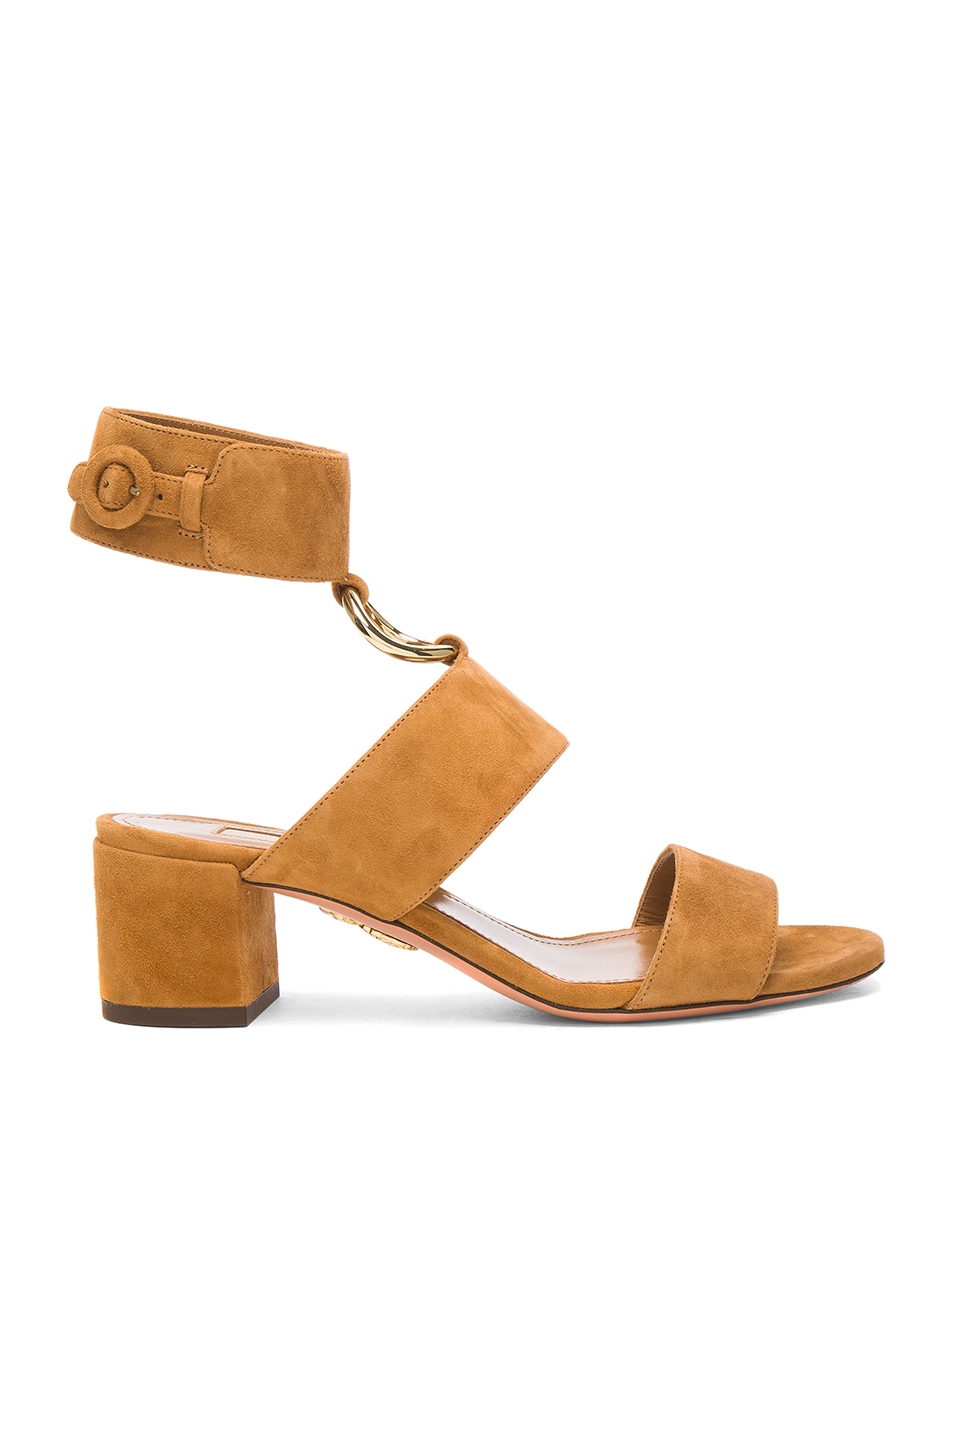 Aquazzura Suede Safari Sandals in Brown